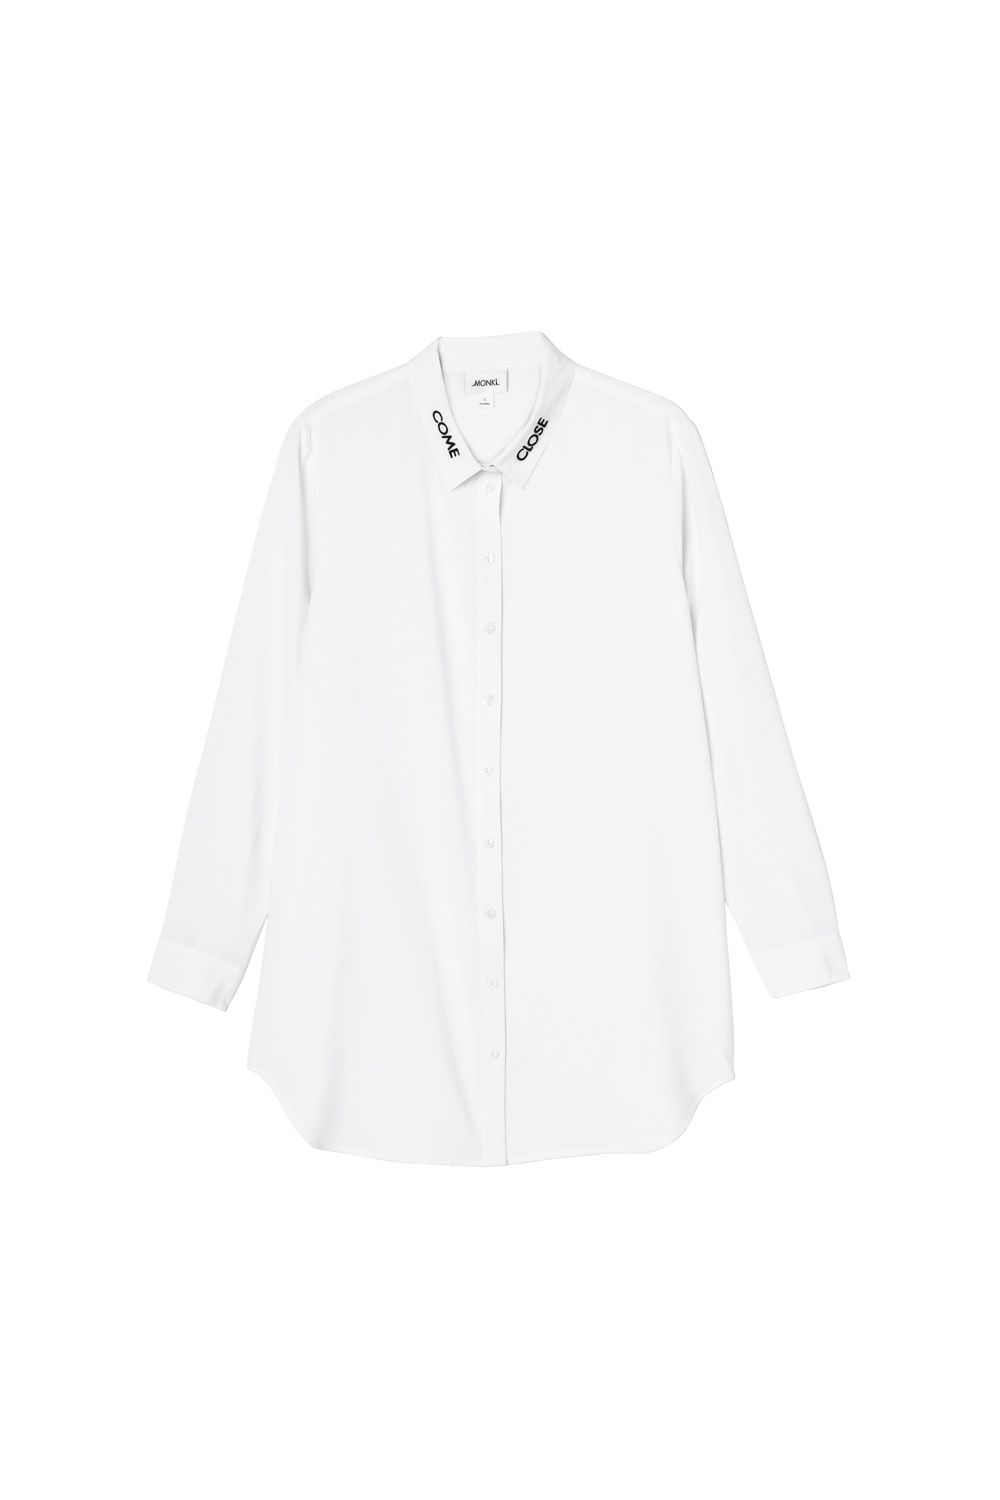 Monki - Martina blouse